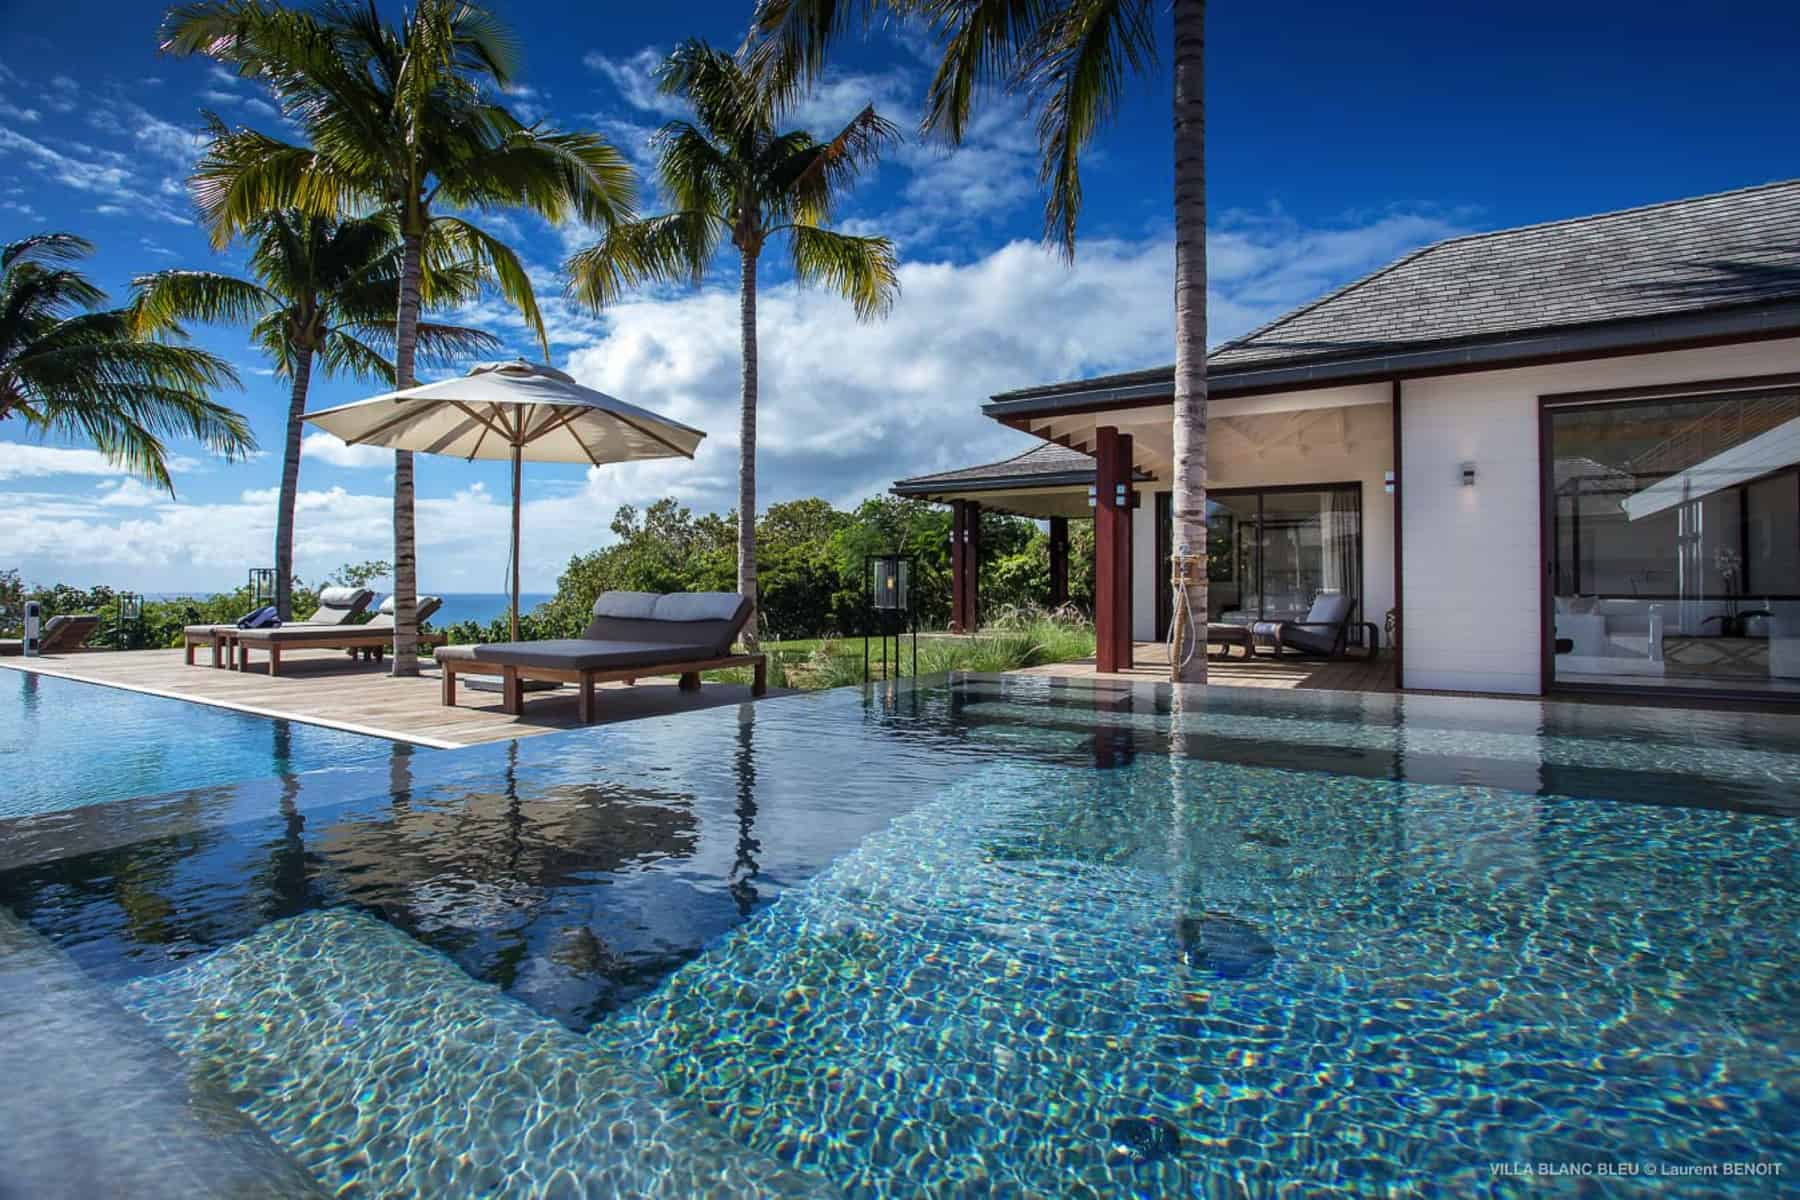 Pool View Villa Blanc Blue St Barths